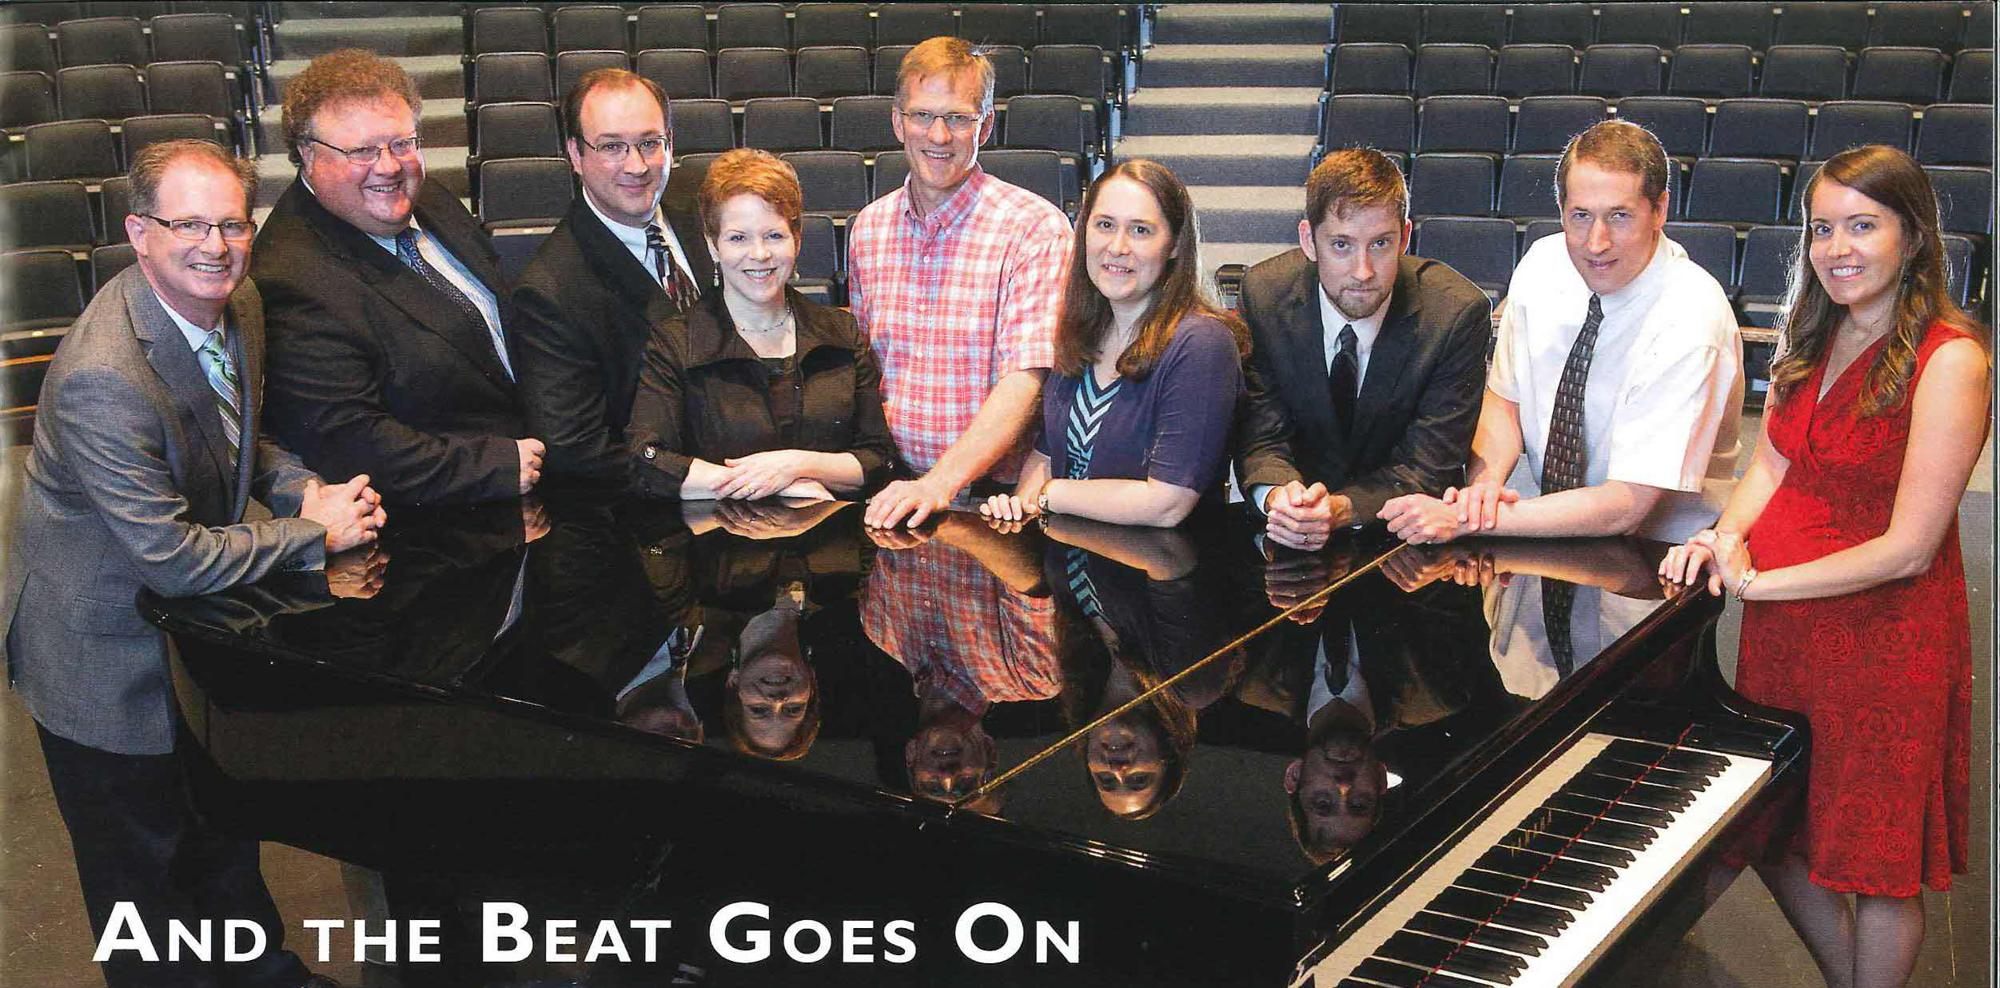 From West Chester University to WSSD: Making Music For Over 30 Years